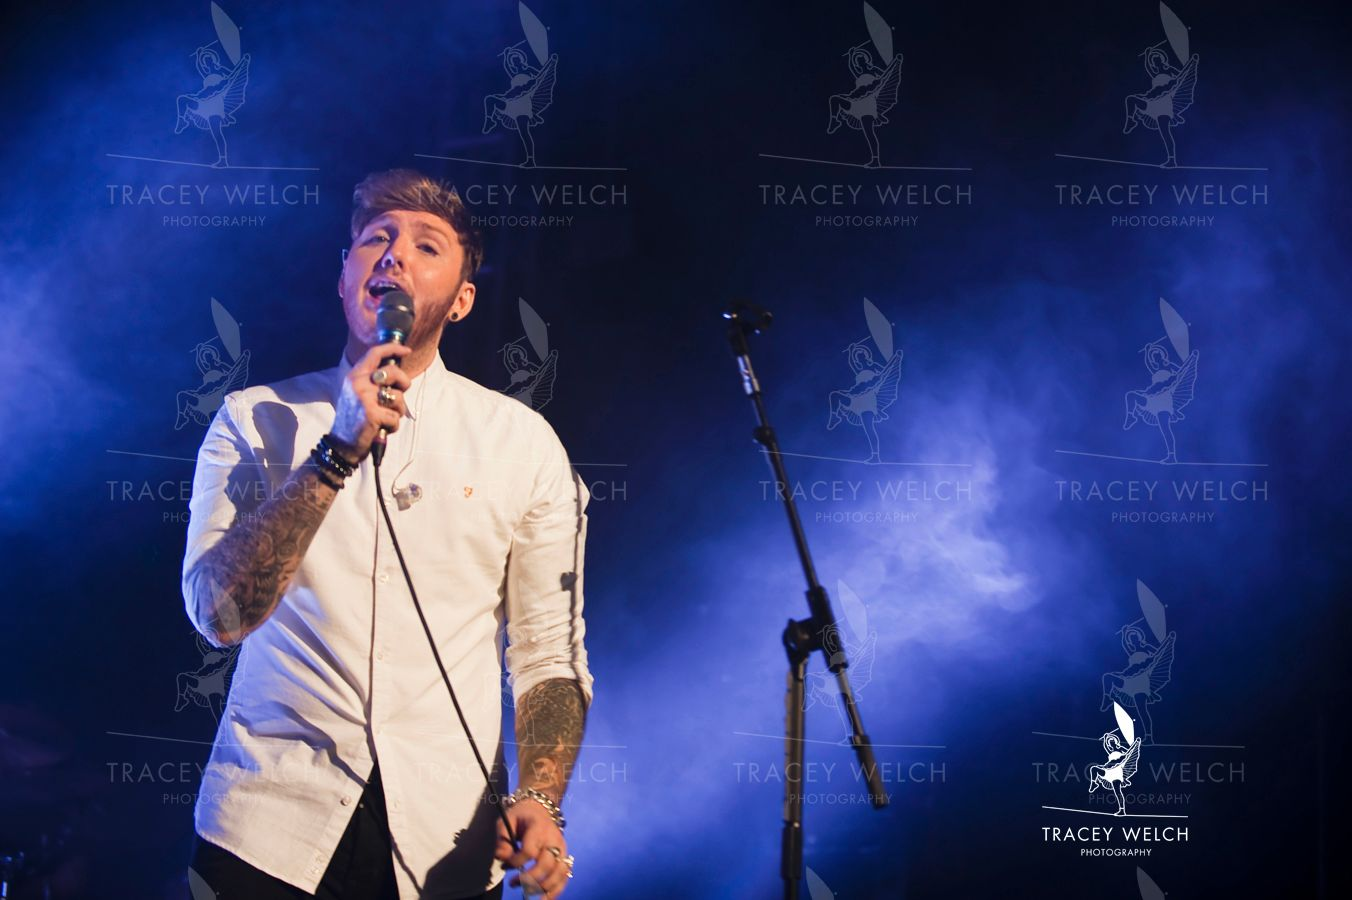 TW James arthur full